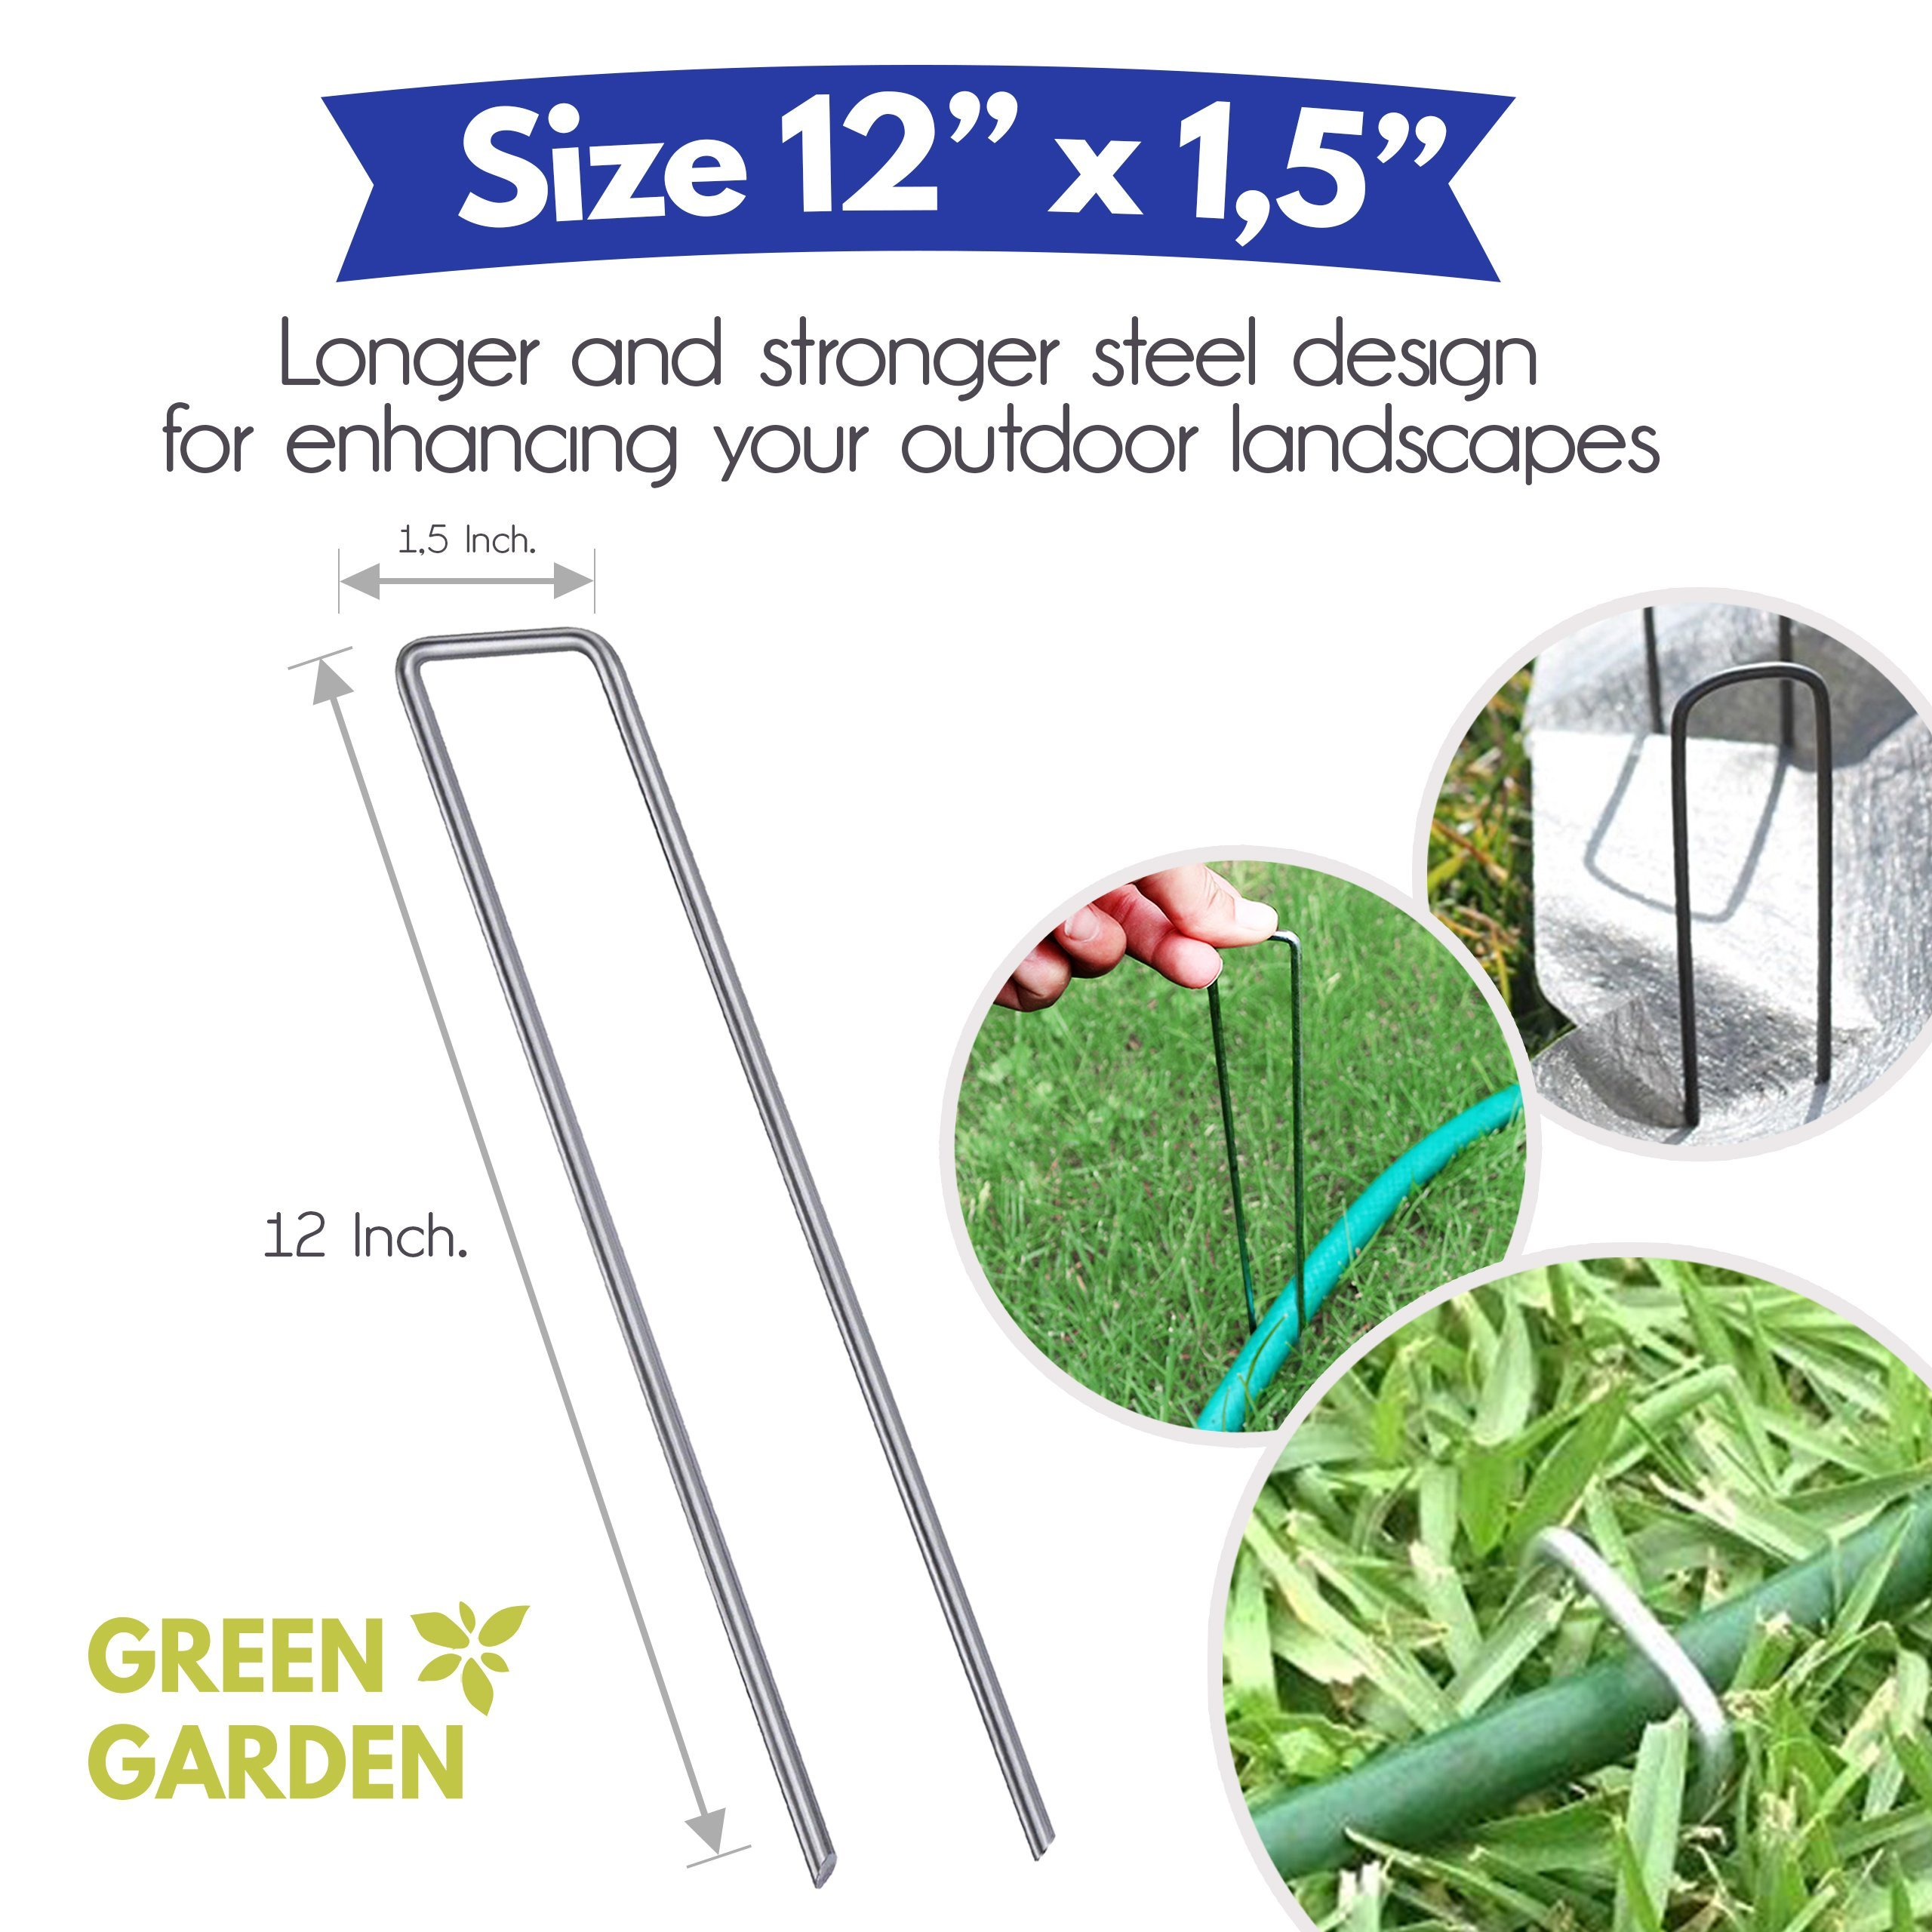 GreenGarden 12 Inch Garden Landscape Staples Stakes Pins SOD | 100 Pack | Galvanized Steel | For Weed Barrier Fabric, Ground Cover, Soaker Hose, Lawn Drippers, Drip Irrigation Tubing etc. | by by GreenGarden (Image #2)